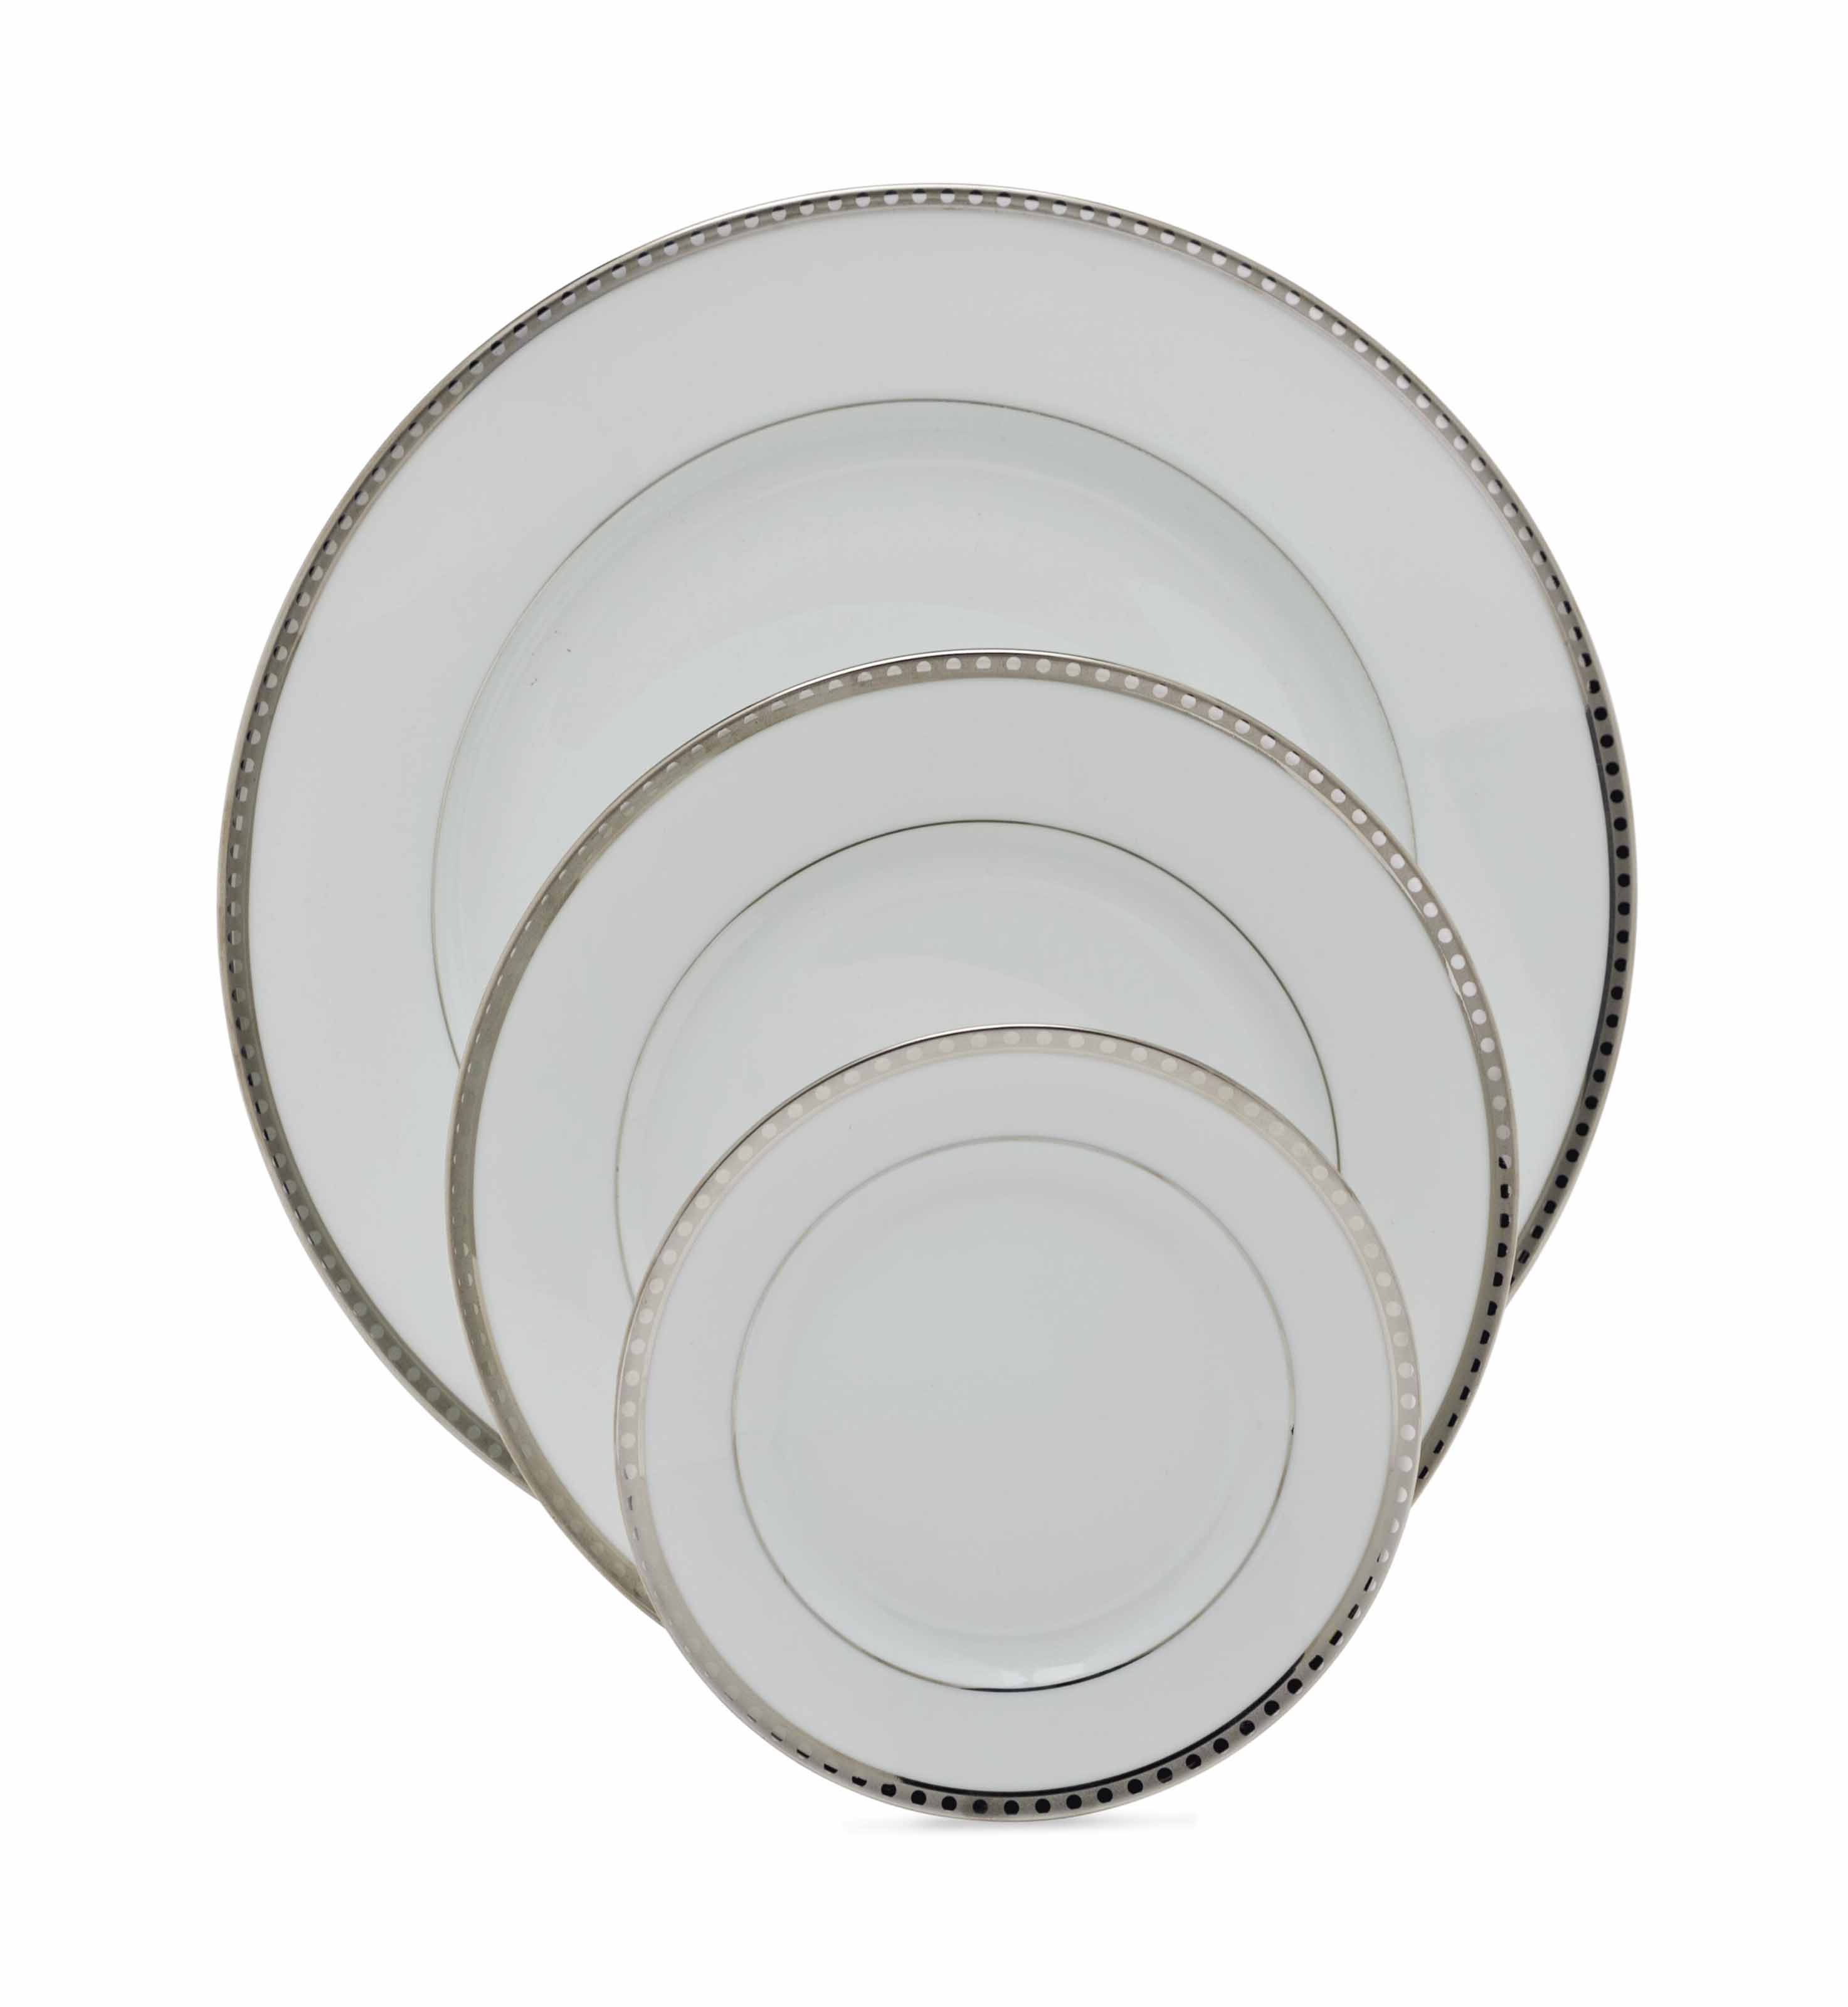 A FRENCH PORCELAIN PART DINNER SERVICE,